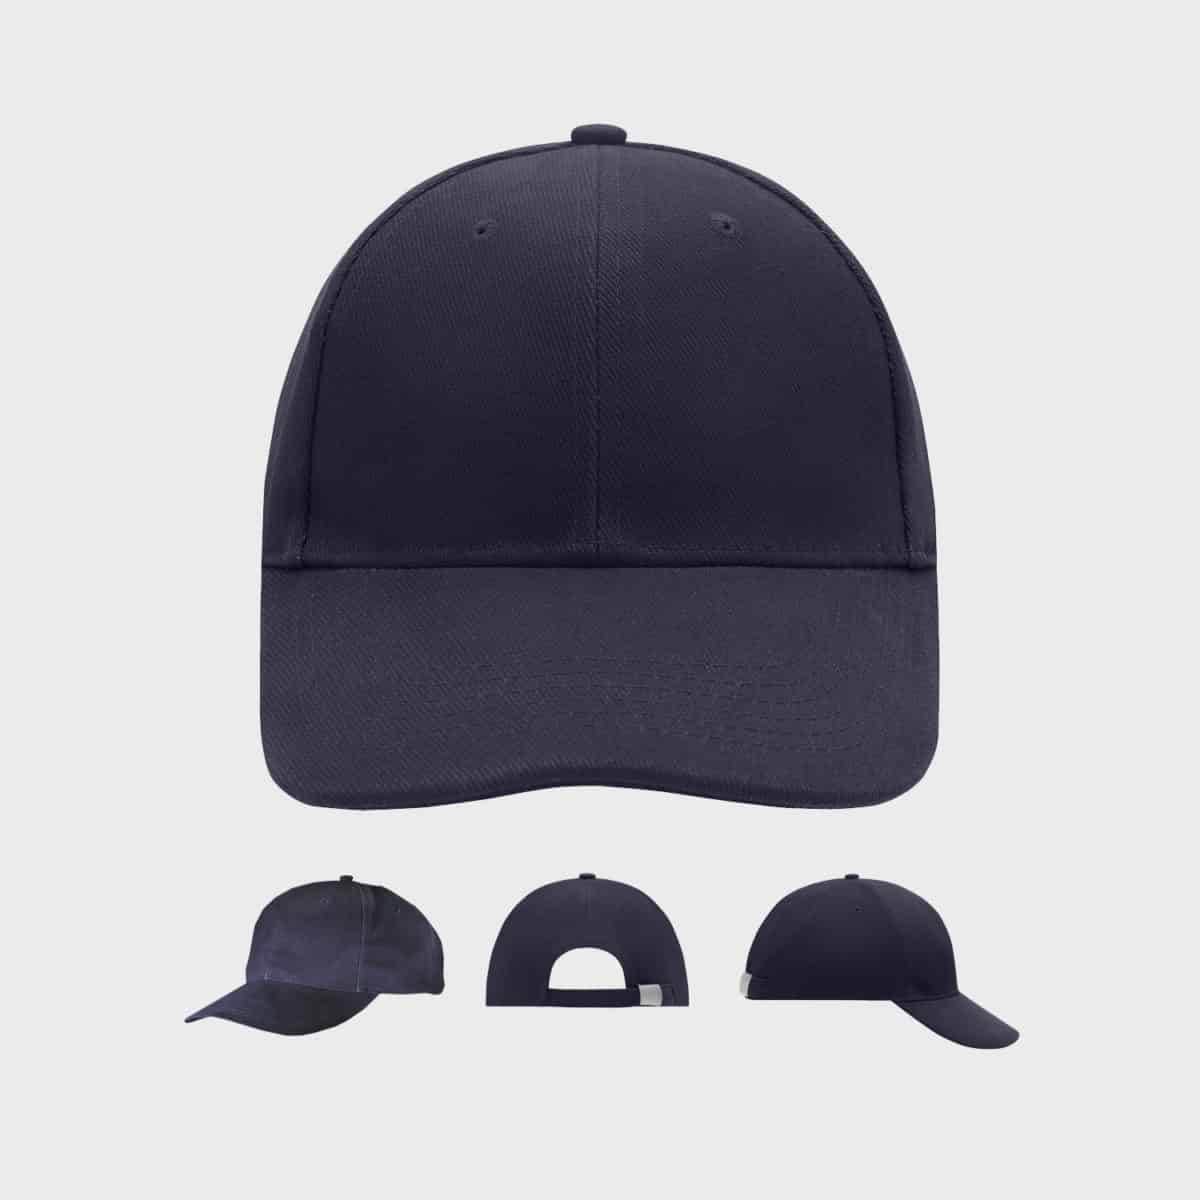 laminated-6-panel-baseball-cap-navy-kaufen-besticken_stickmanufaktur